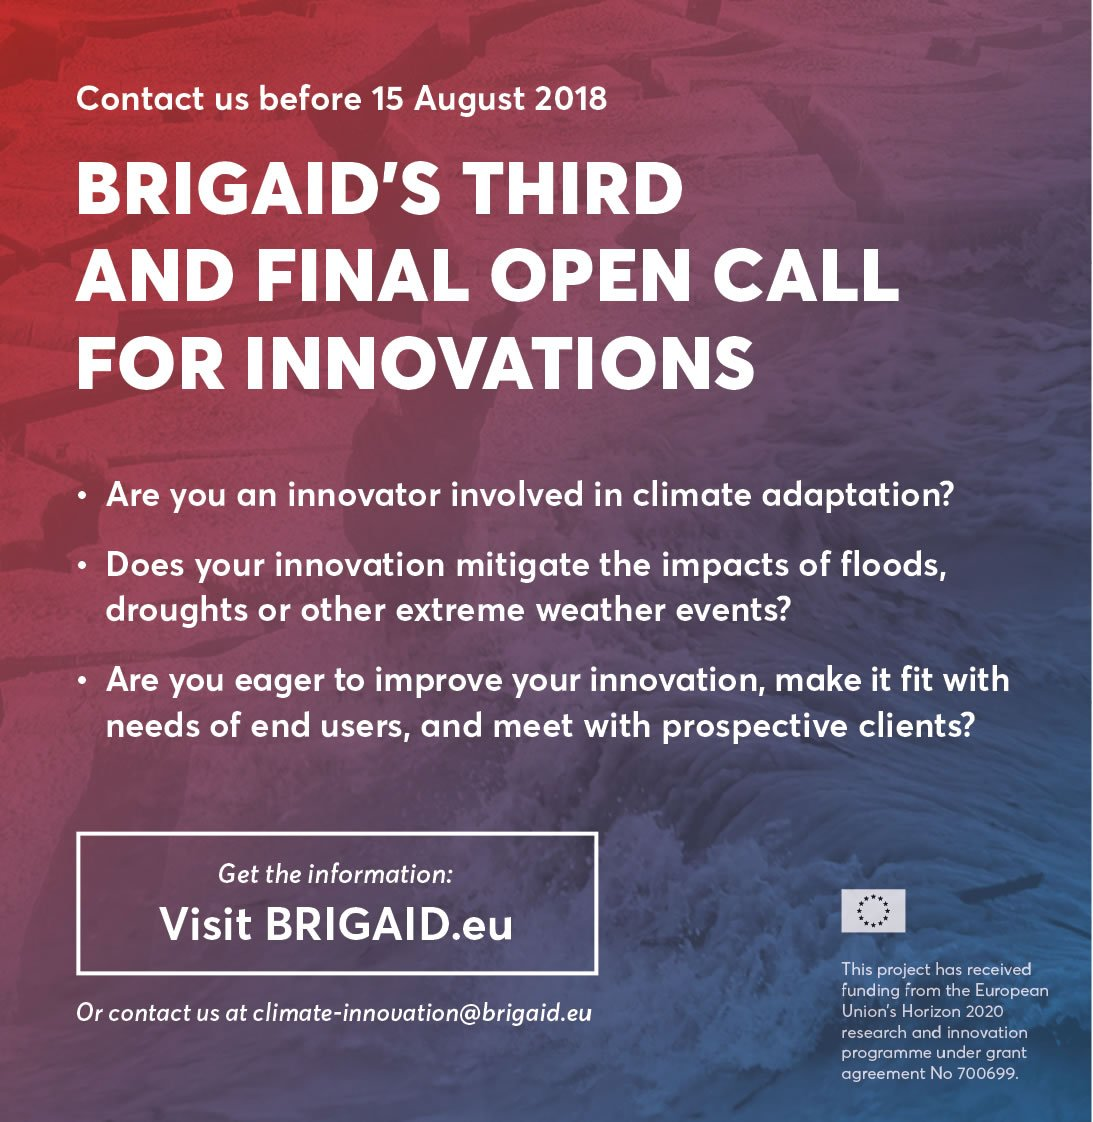 TOMORROW LAST DAY!!! Final call for innovations. Does your innovation mitigate the impacts of floods, droughts or other extreme weather events? Get more information here  https:// bit.ly/2LjrCjk  &nbsp;   and Contact us! #H2020 #brigaid_eu #EASME<br>http://pic.twitter.com/anPn0iYXVZ